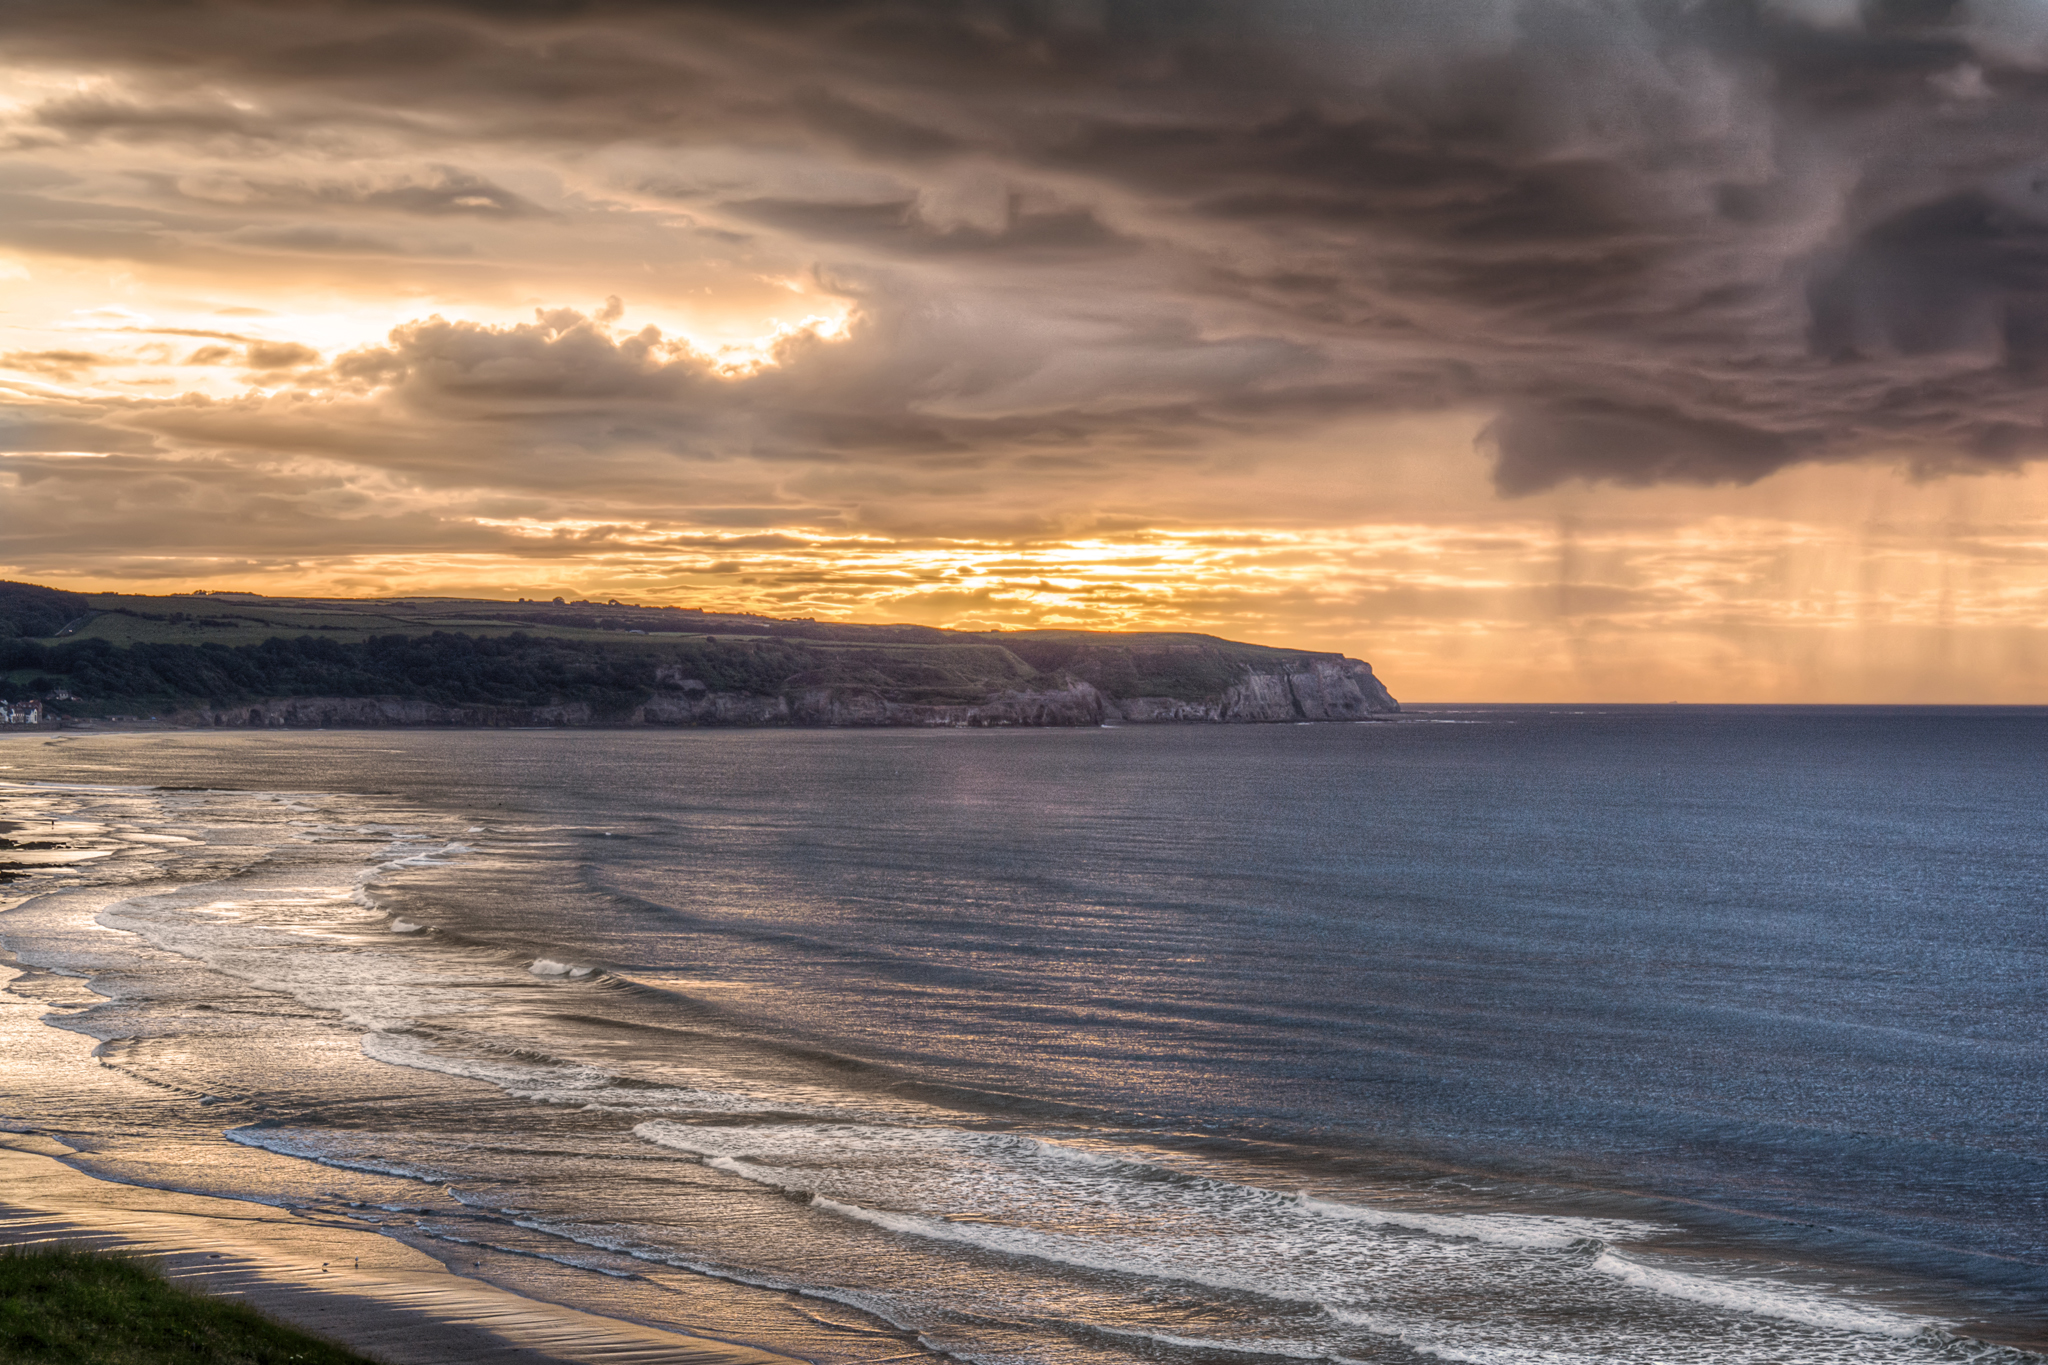 Sunset over Sandsend